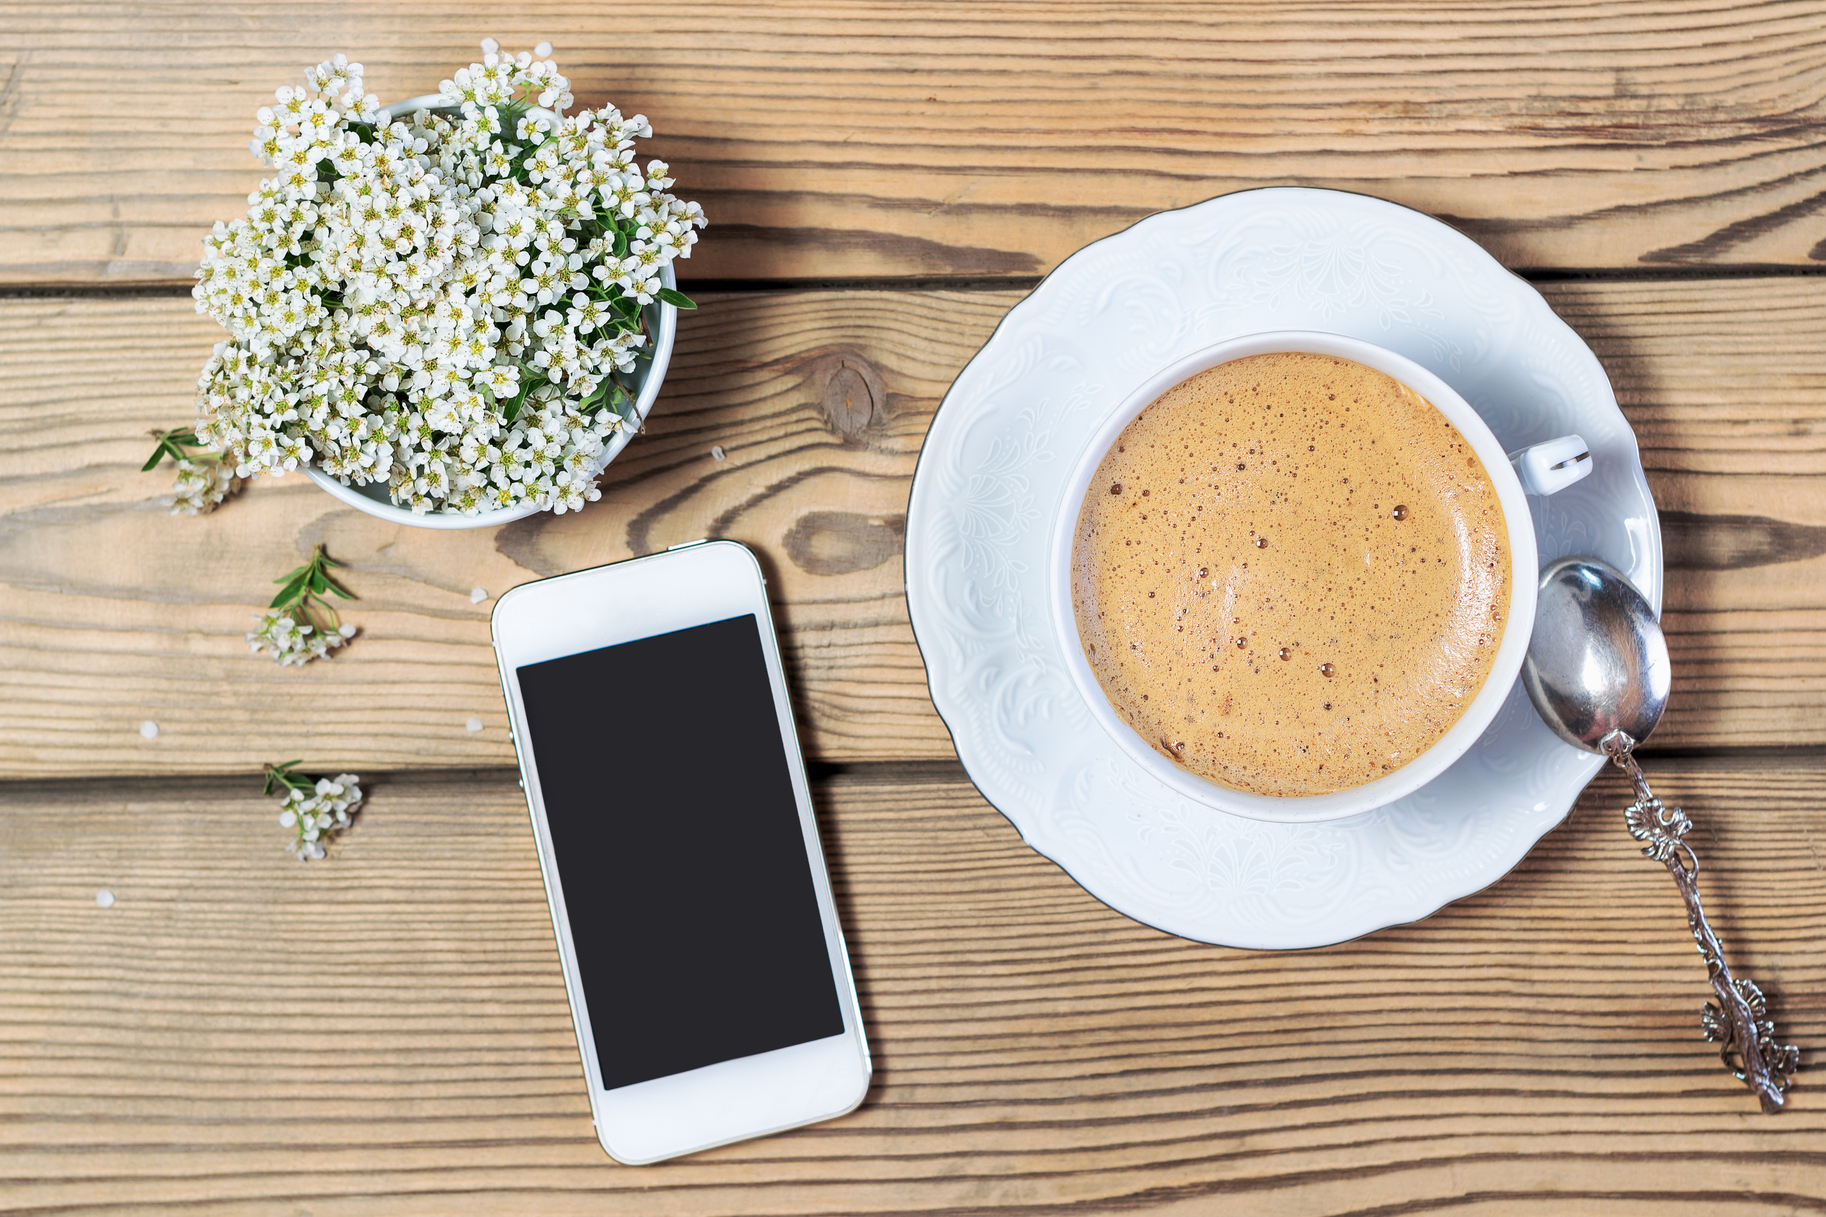 Cup of coffee, mobile phone and flowers on wooden table